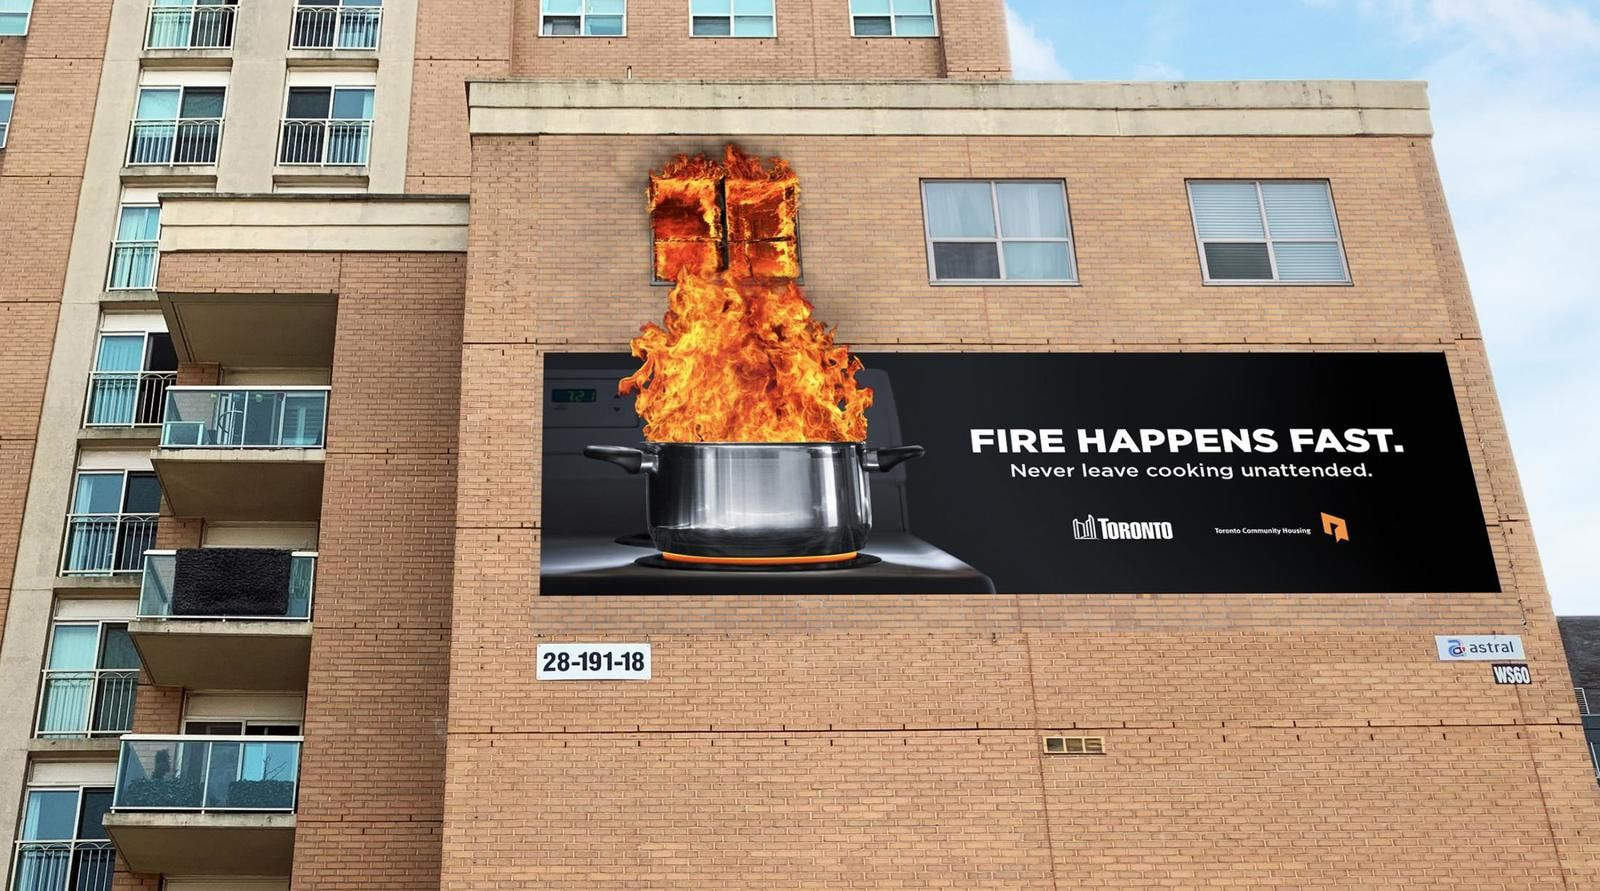 "City of Toronto & Toronto Community Housing : ""Fire happens fast. Never leave cooking unattended"" I Agence : Publicis, Canada (octobre 2019)"